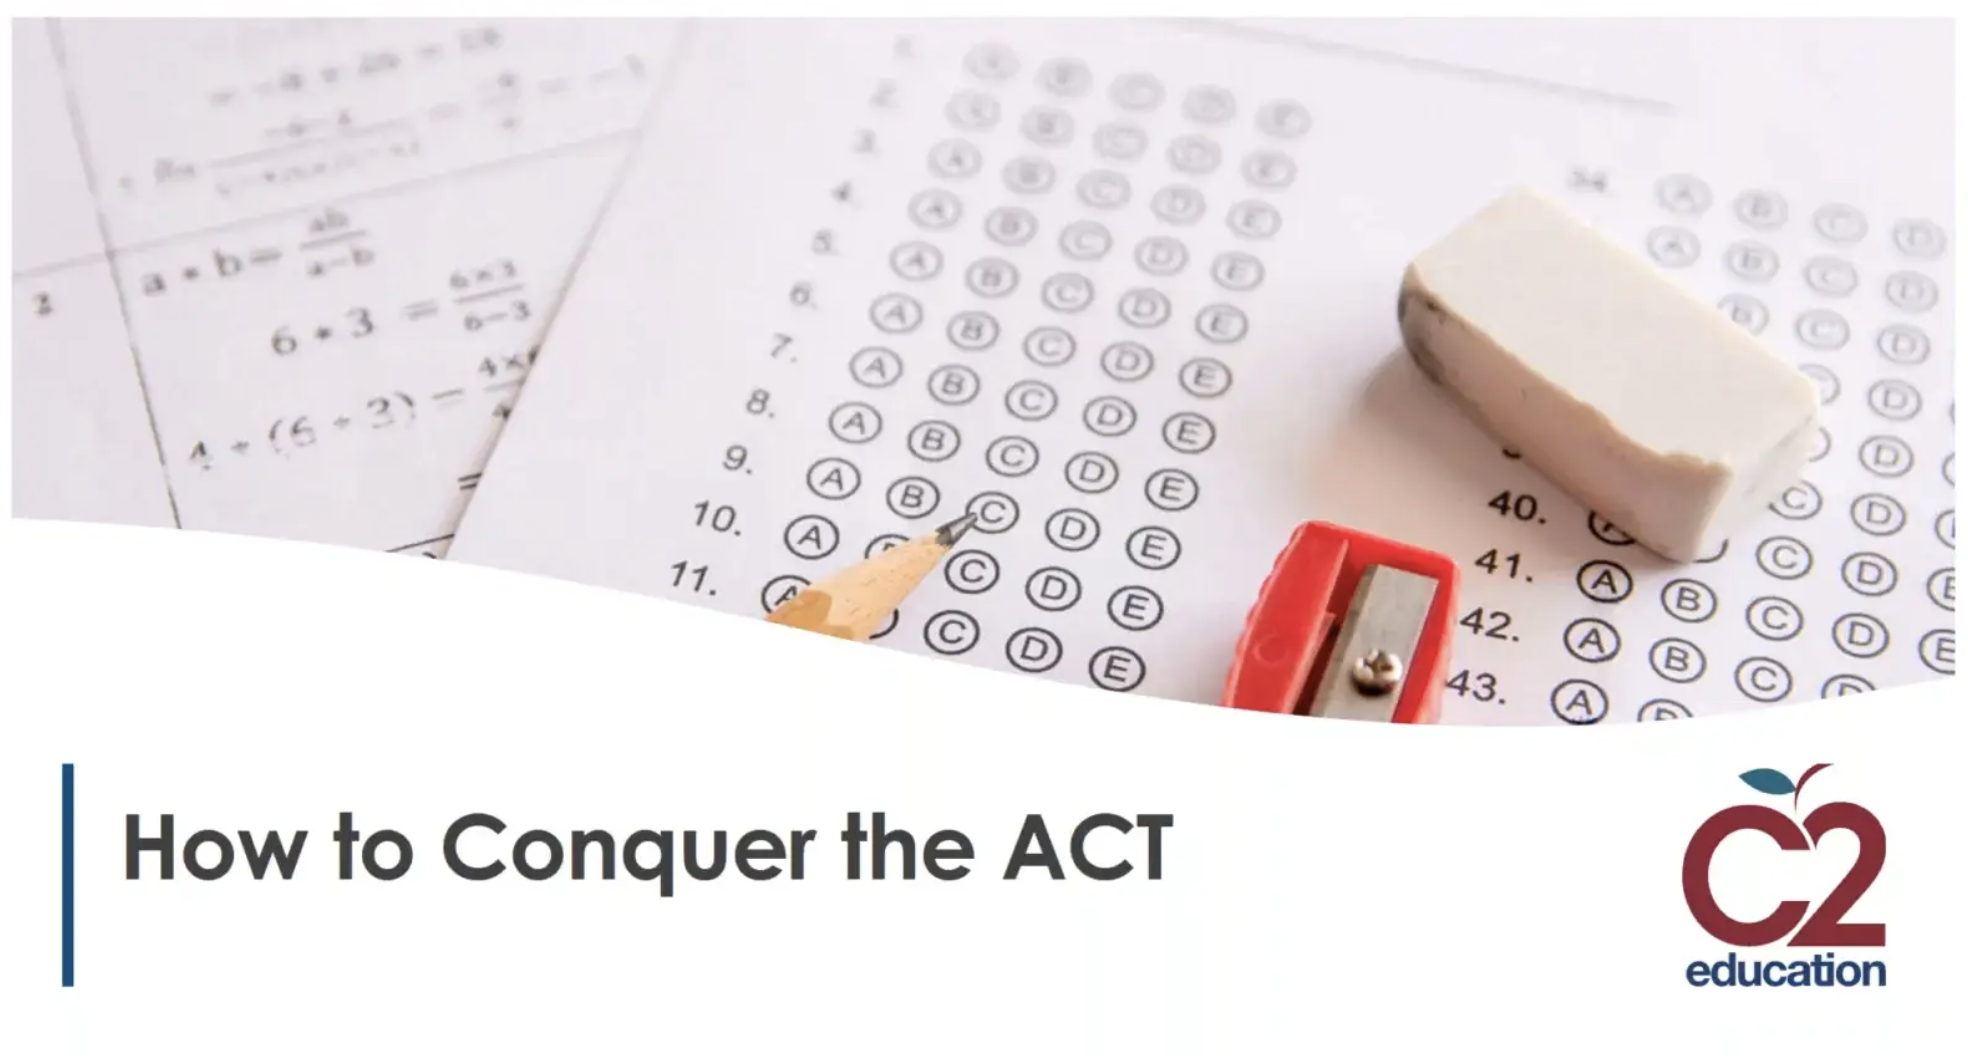 webinar slide about conquering the act testw